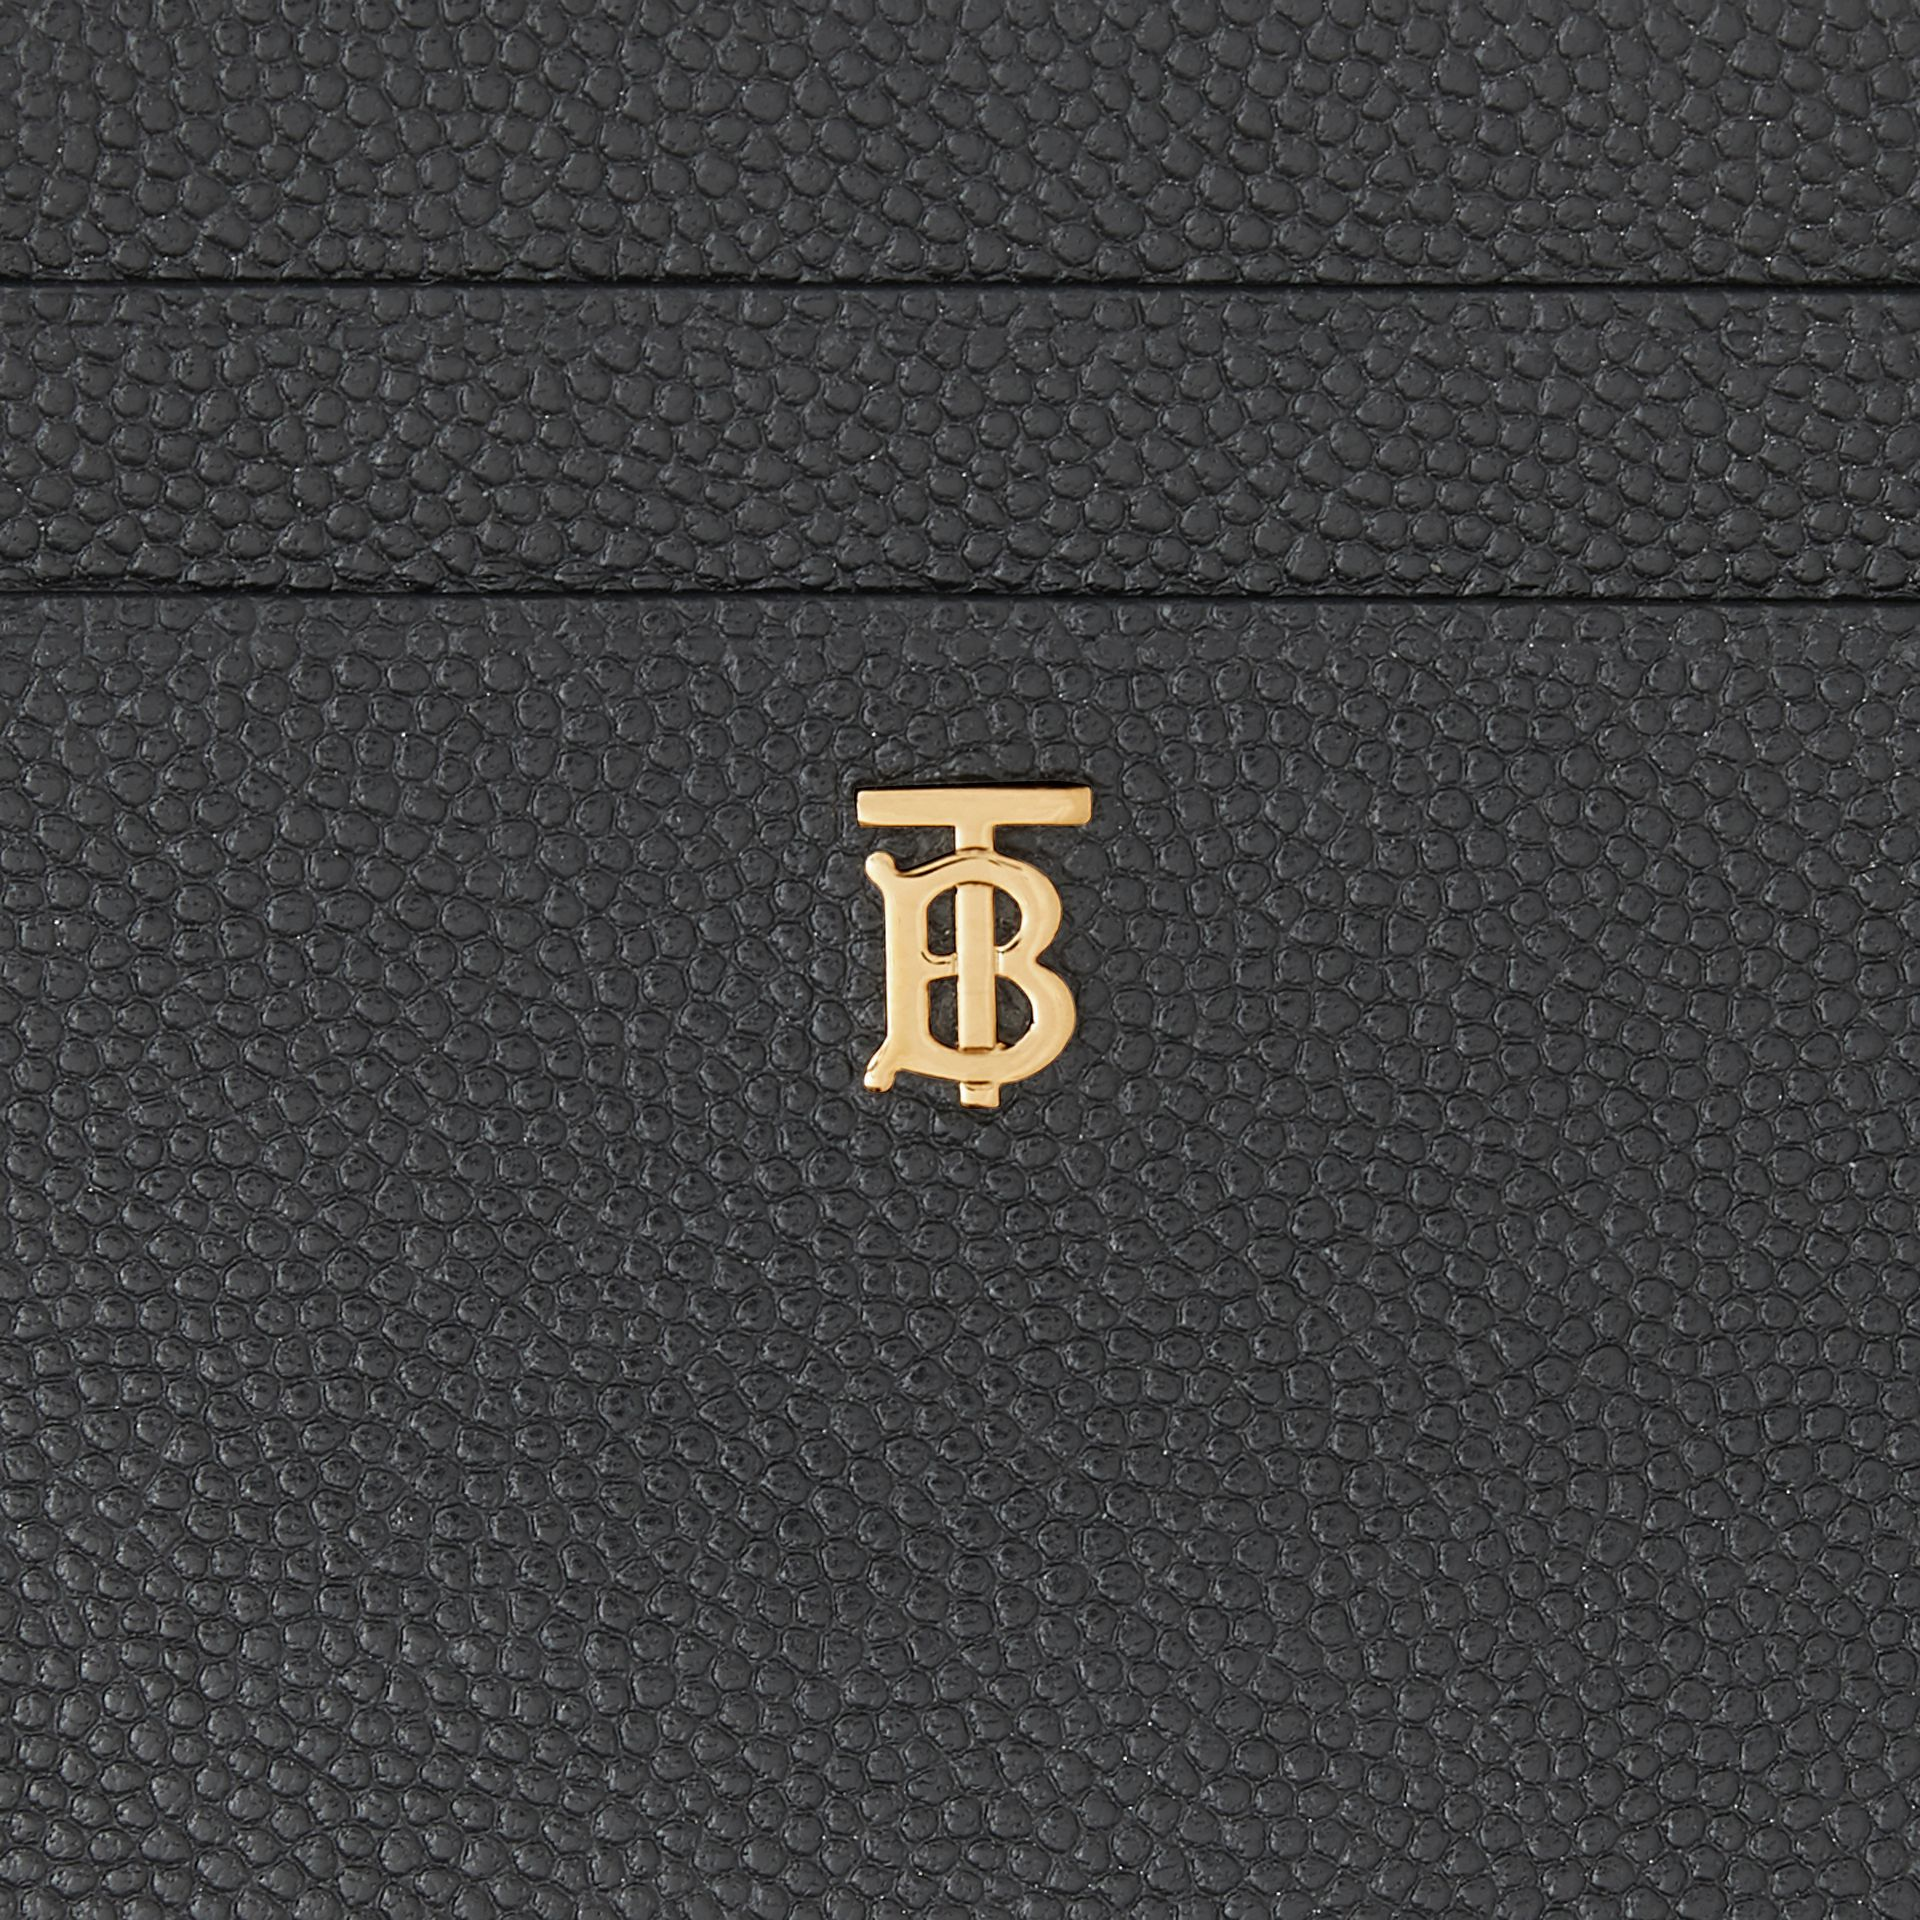 Monogram Motif Leather Card Case in Black - Women | Burberry - gallery image 1